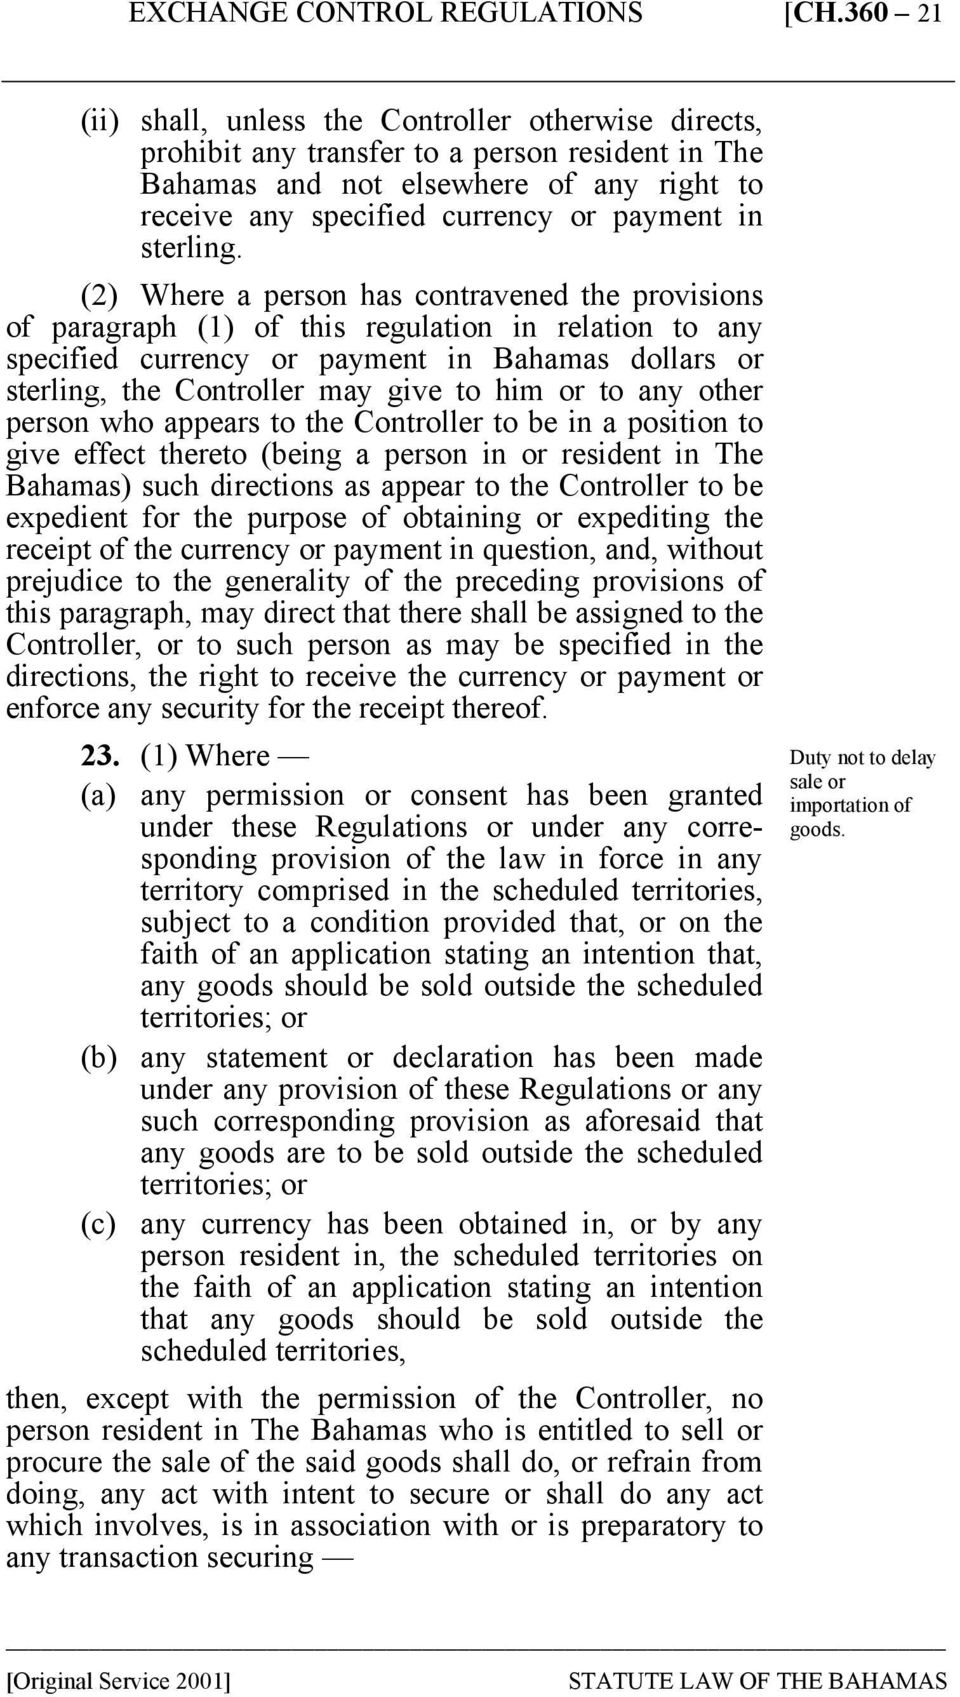 (2) Where a person has contravened the provisions of paragraph (1) of this regulation in relation to any specified currency or payment in Bahamas dollars or sterling, the Controller may give to him